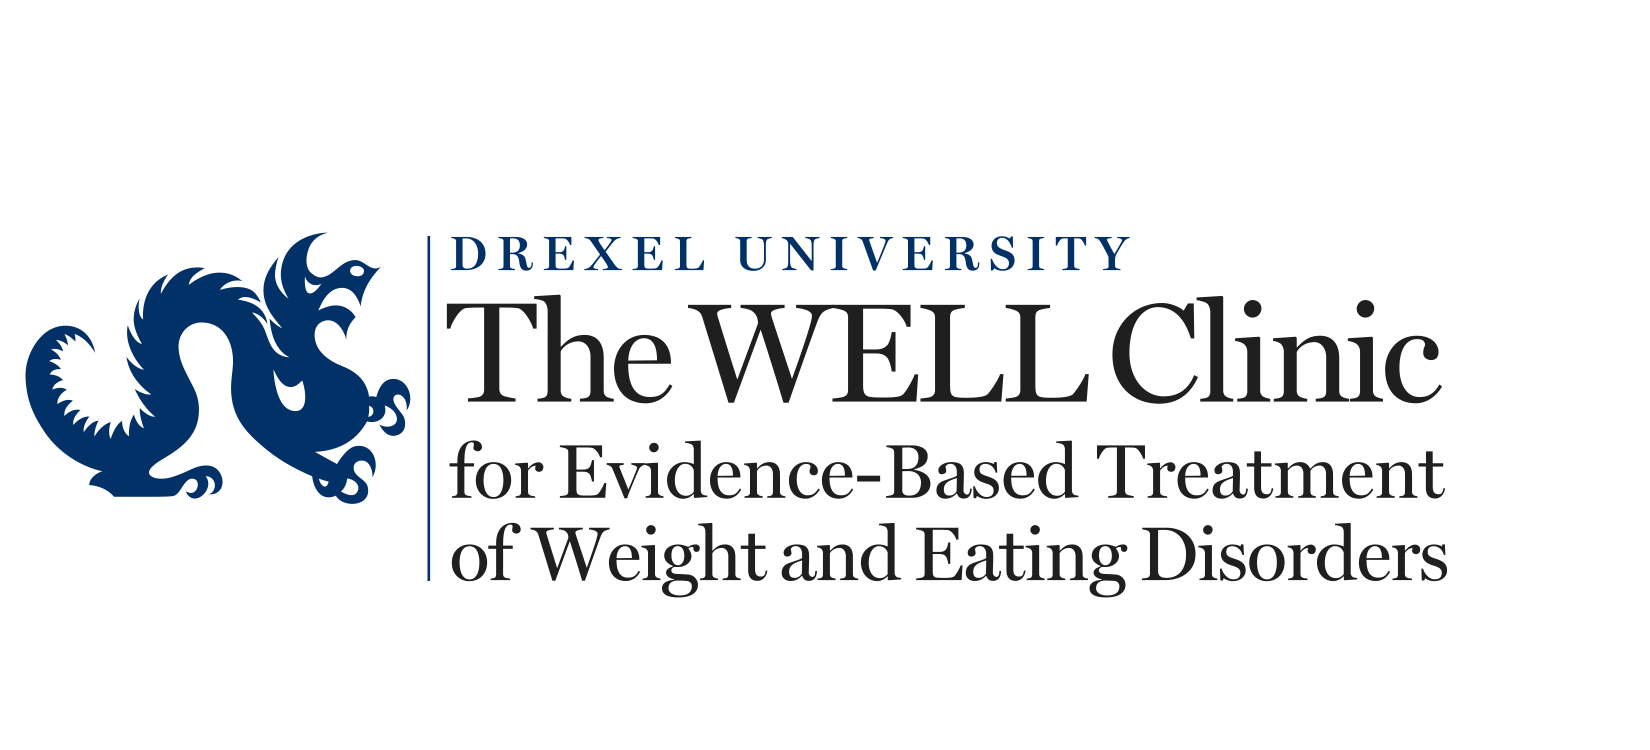 The Well Clinic - Drexel University Logo - 1650x750